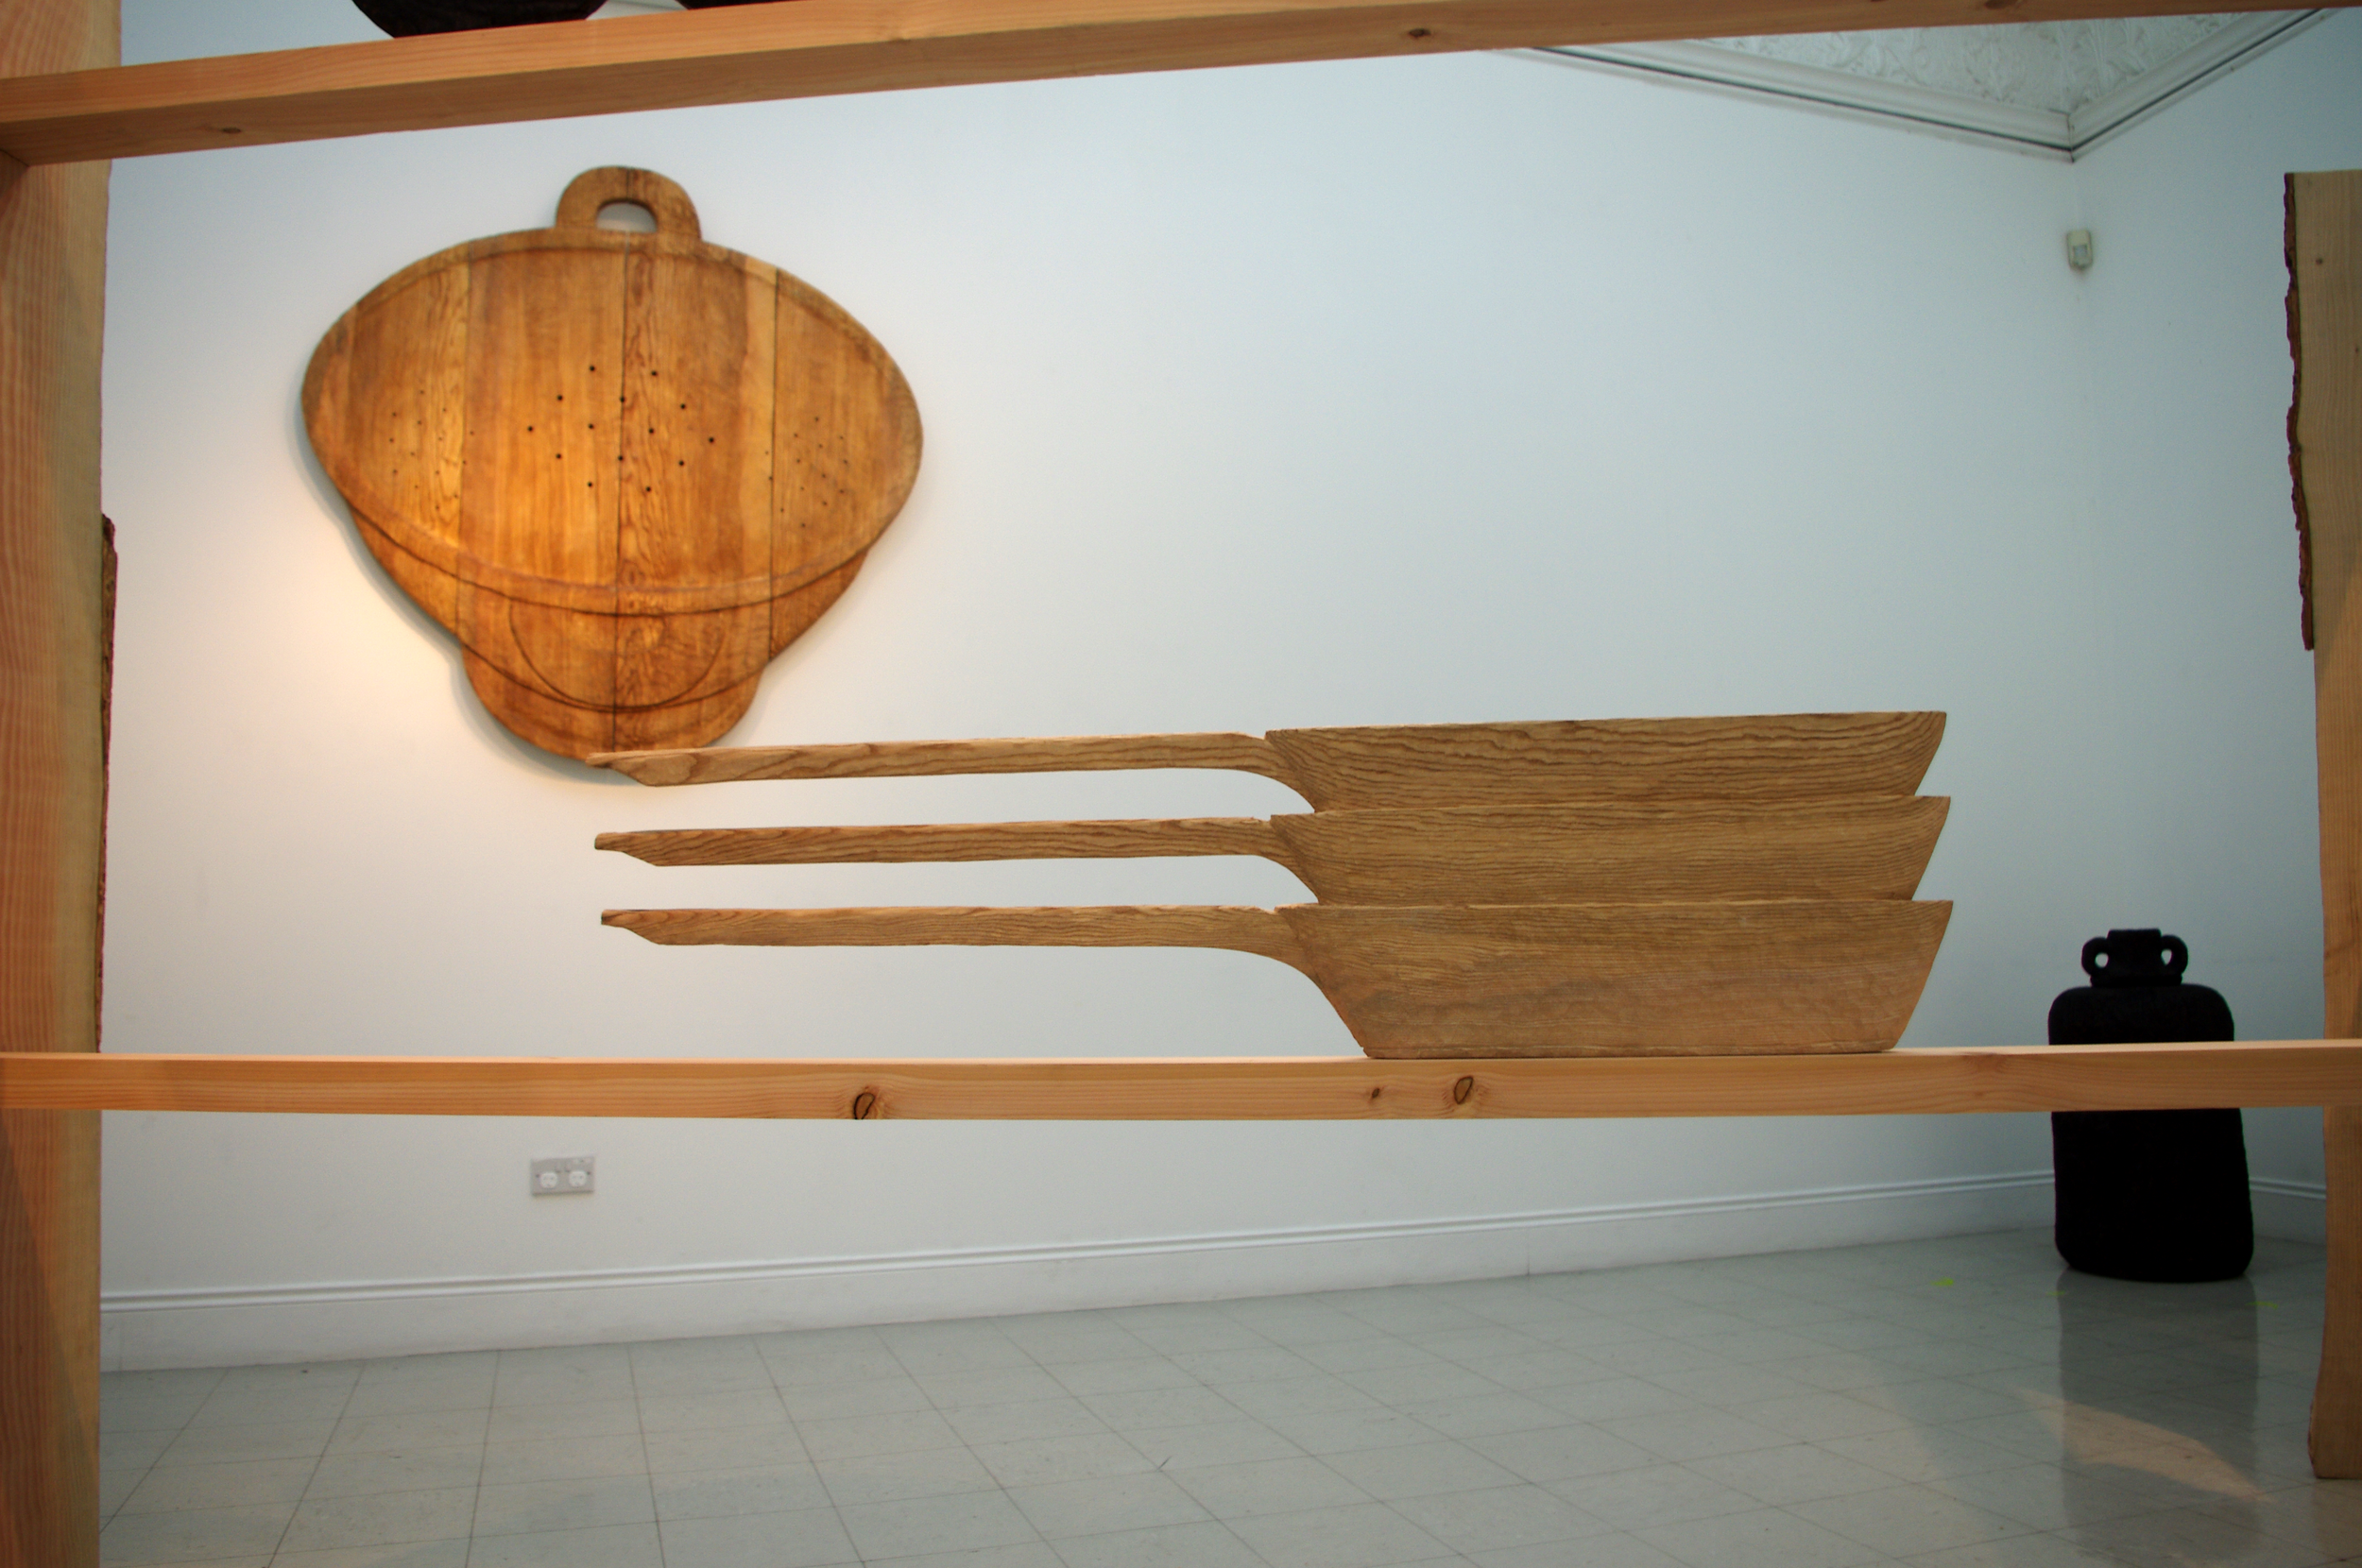 The Projected Kitchen | 2016  Carved and constructed wood Installation - sizes variable